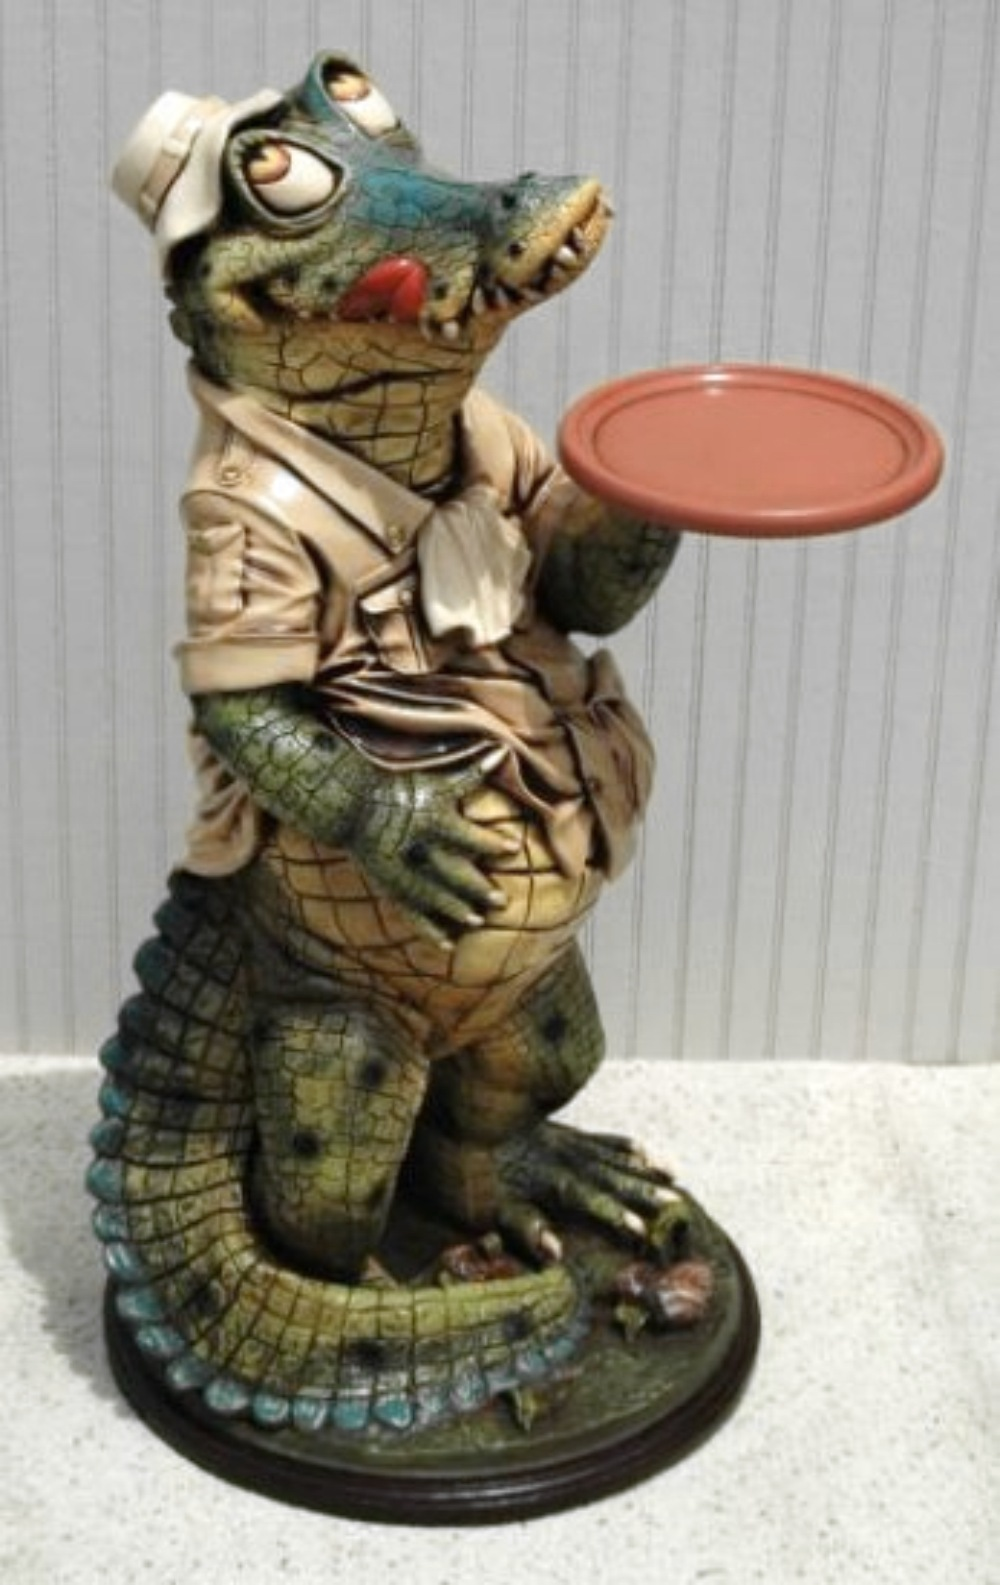 alligator butler waiter statue 2ft tall restaurant of kitchen crocodile swamp people style the. Black Bedroom Furniture Sets. Home Design Ideas